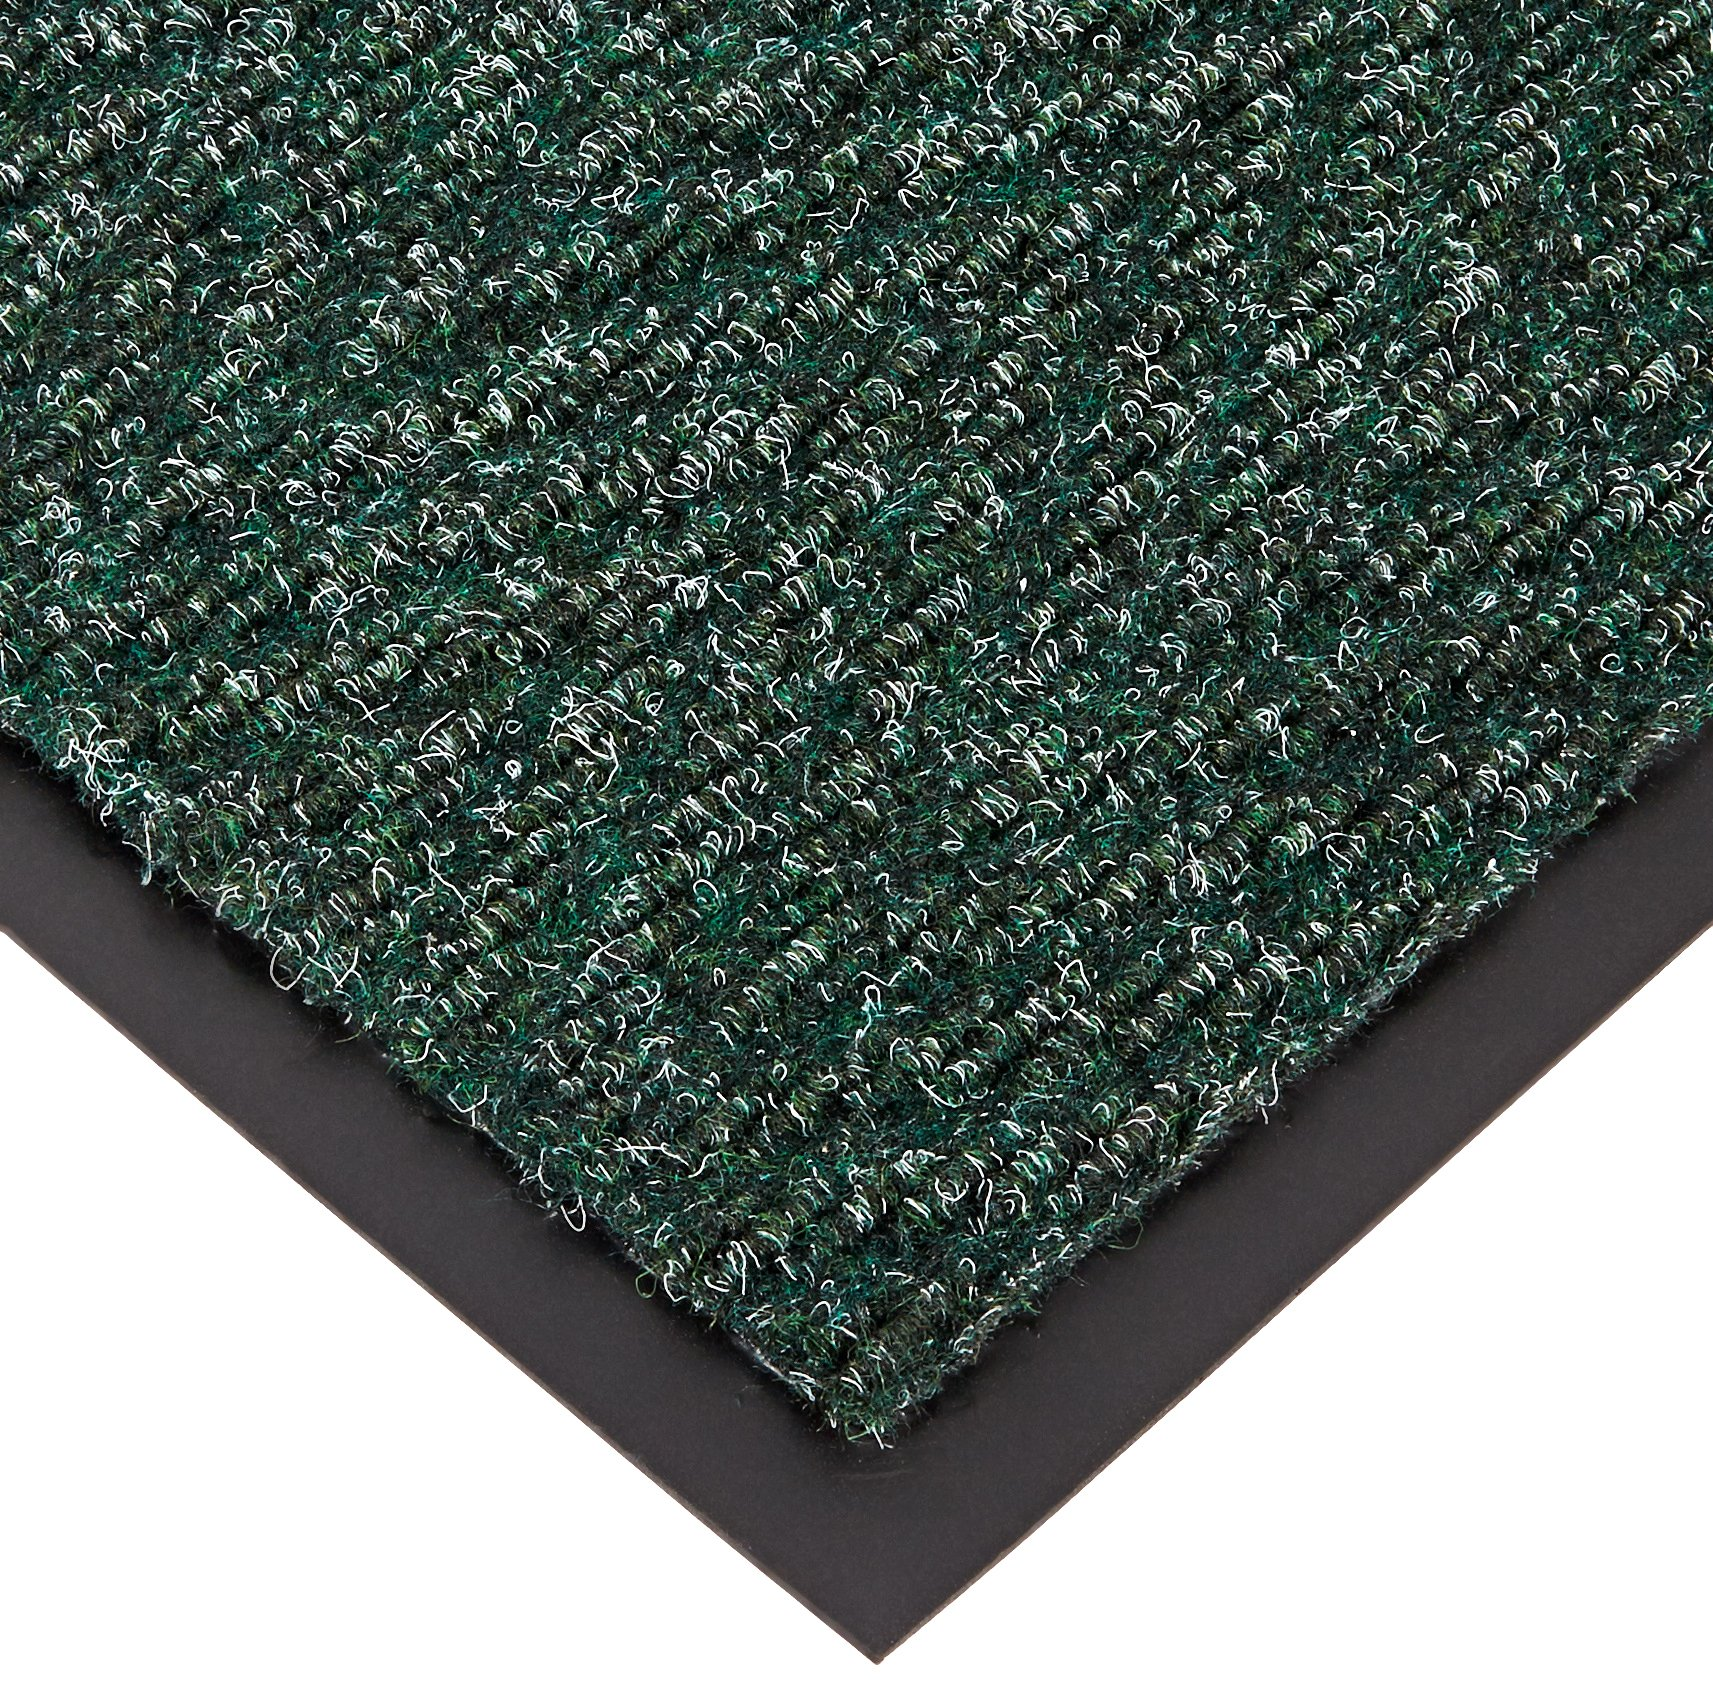 NoTrax 118 Arrow Trax Entrance Mat, for Main Entranceways and Heavy Traffic Areas, 4' Width x 6' Length x 3/8'' Thickness, Hunter Green